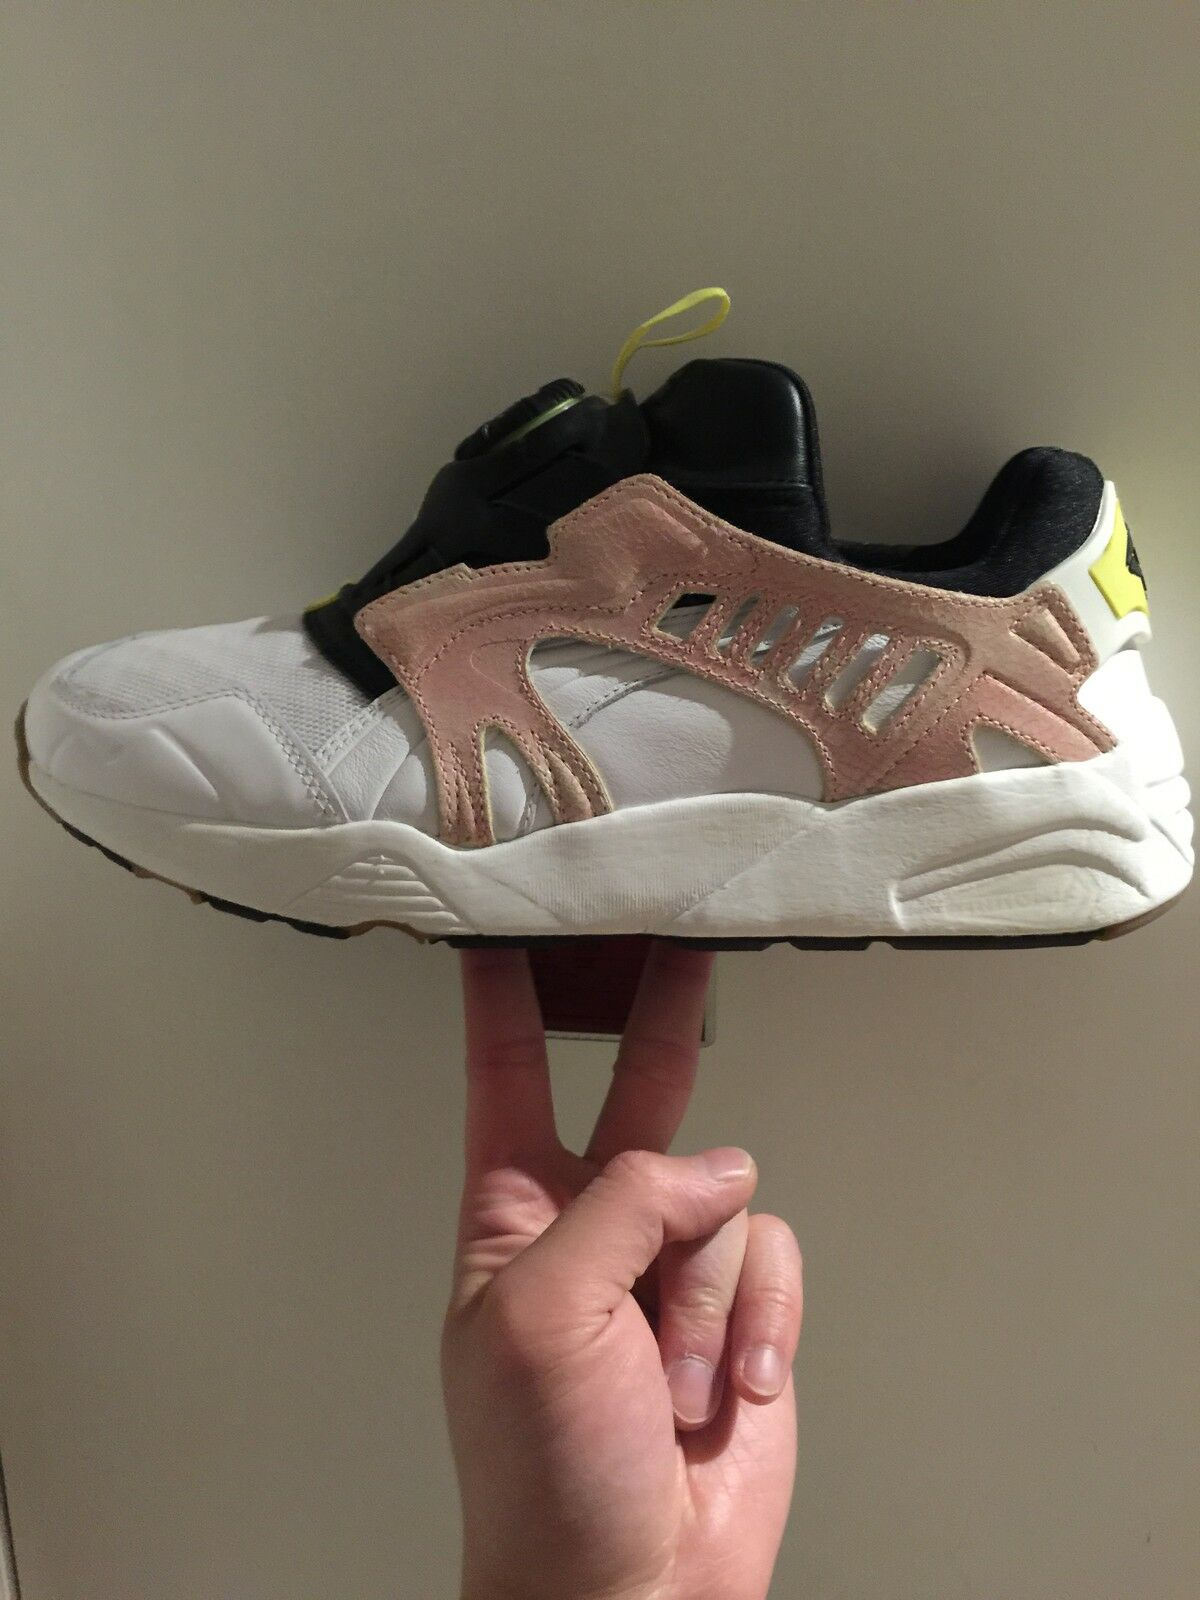 Puma Disc Blaze Flamingo Ronnie Fieg Sample 9 BOG  Freaker